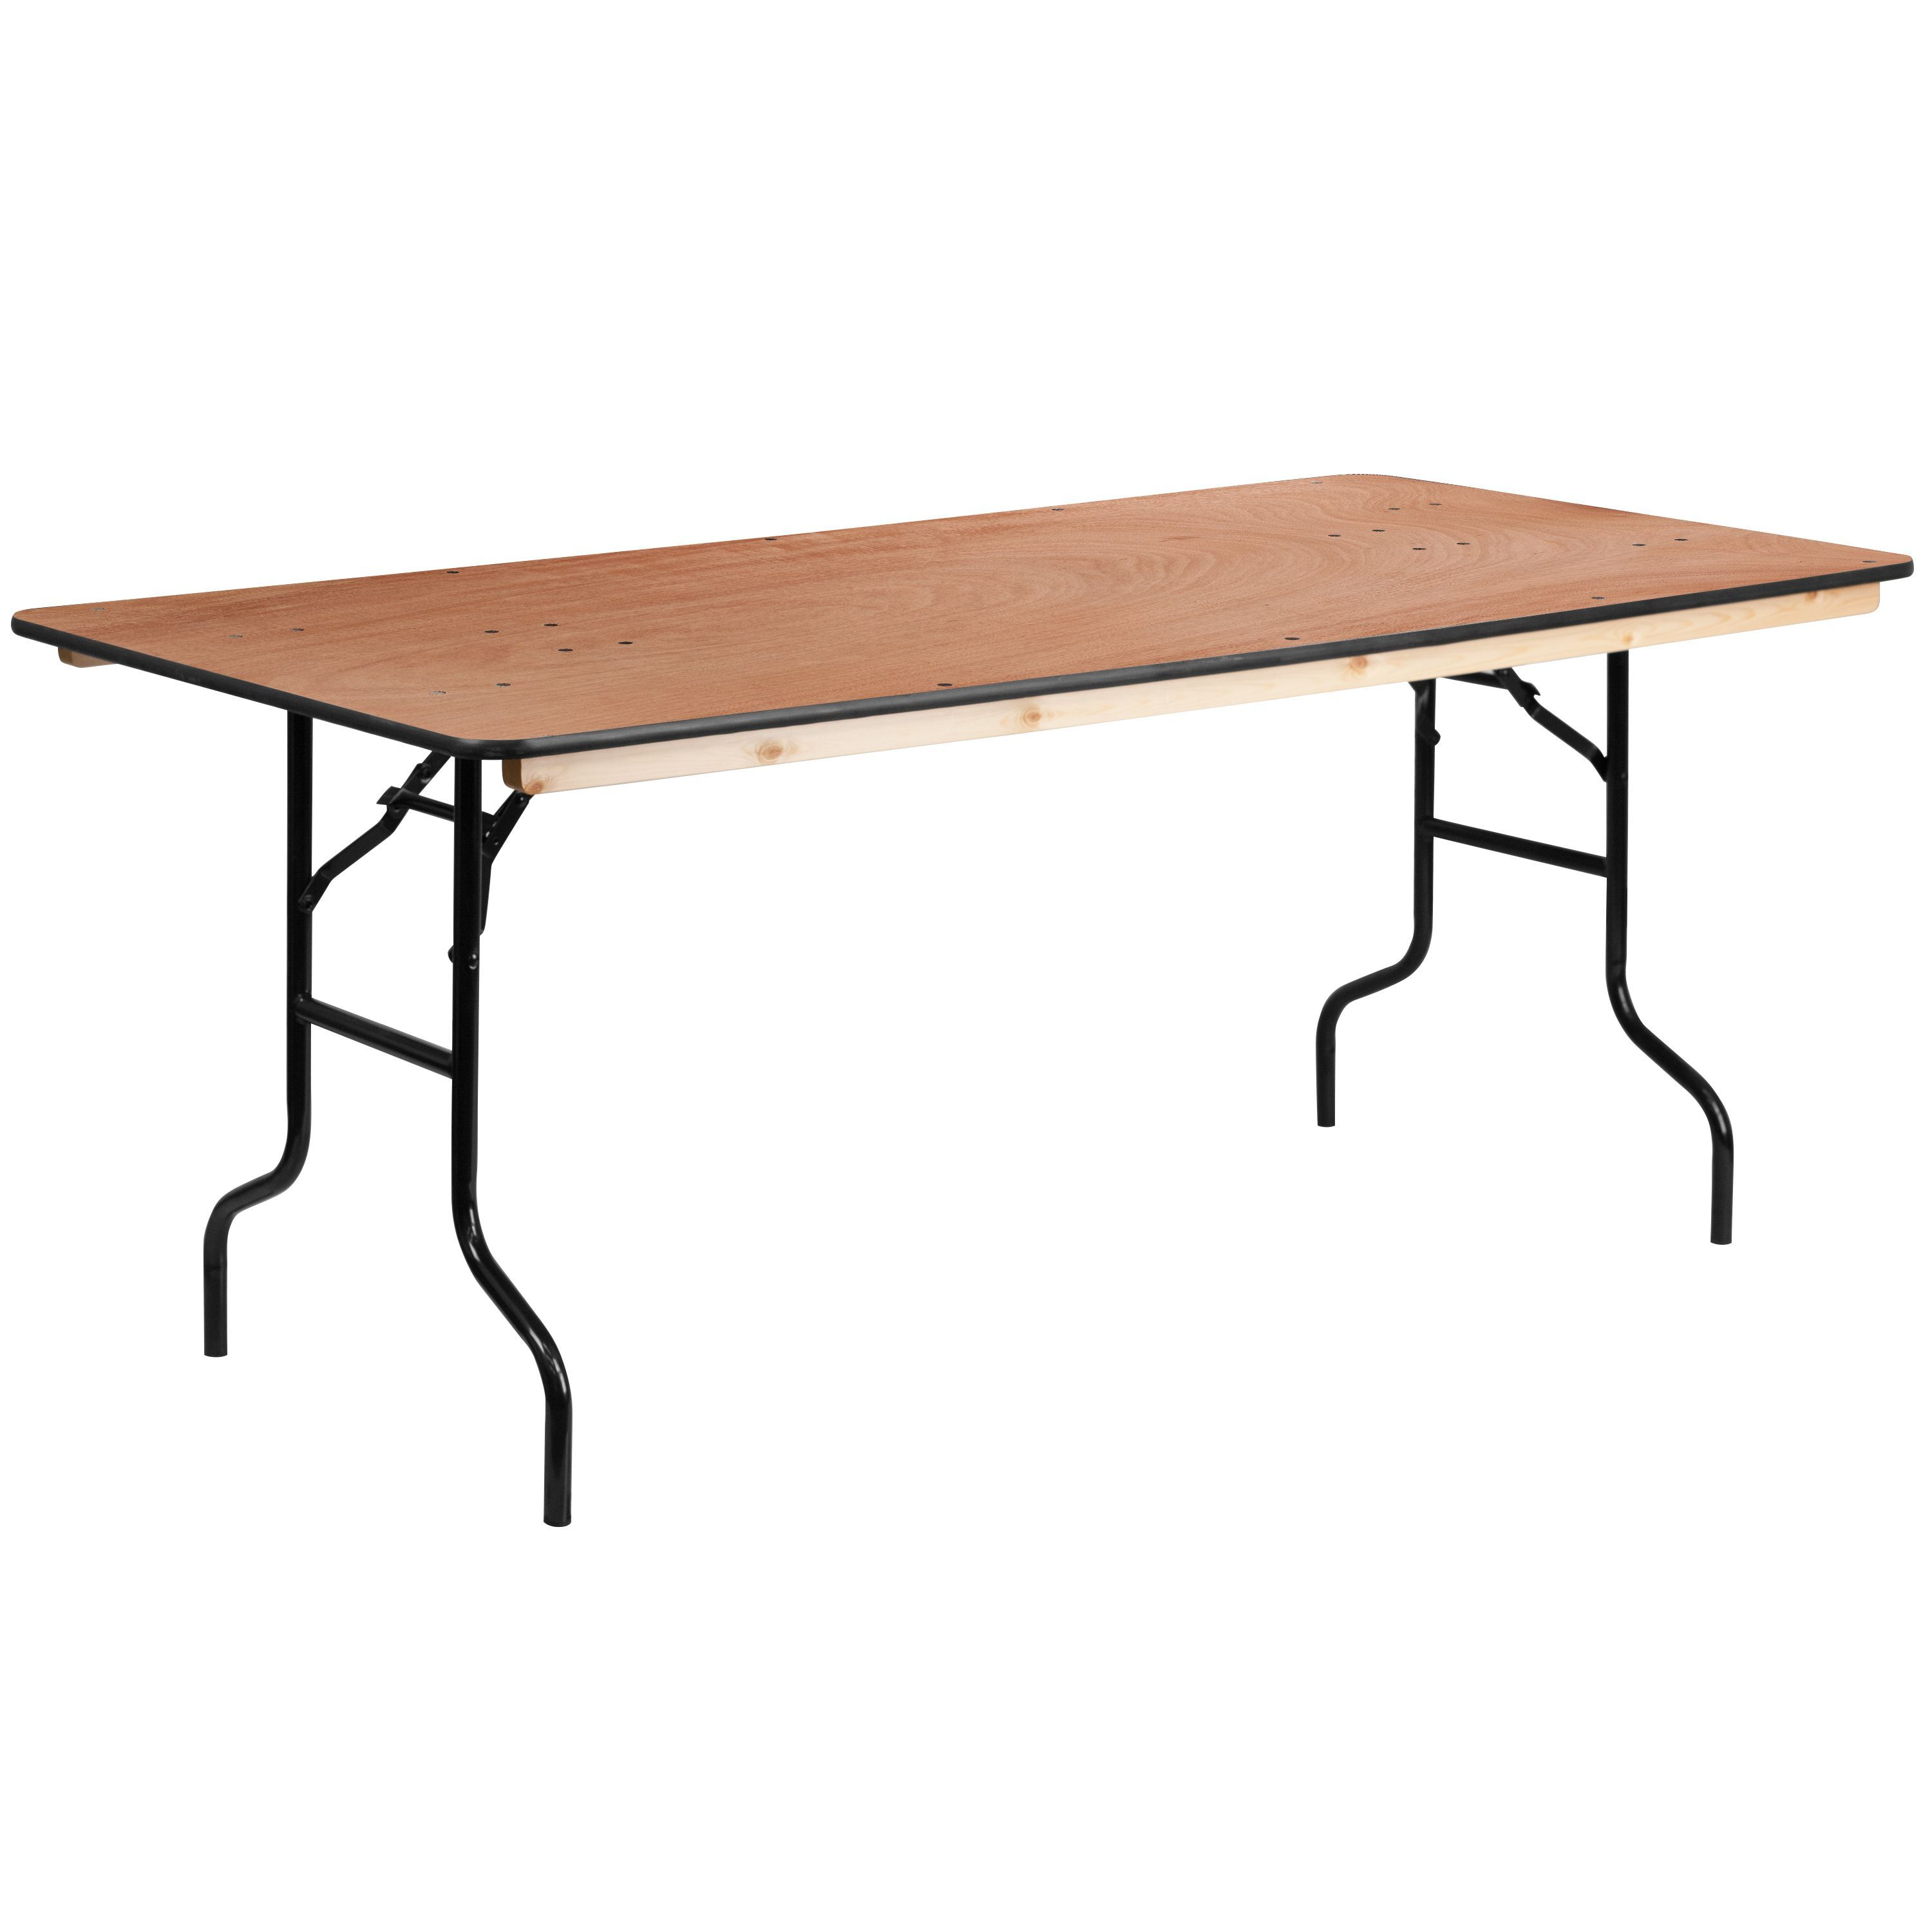 Rectangular Wood Folding Banquet Table With Clear Coated Finished Top 36 Inch X 72 Inch Wood Folding Table Furniture Banquet Tables